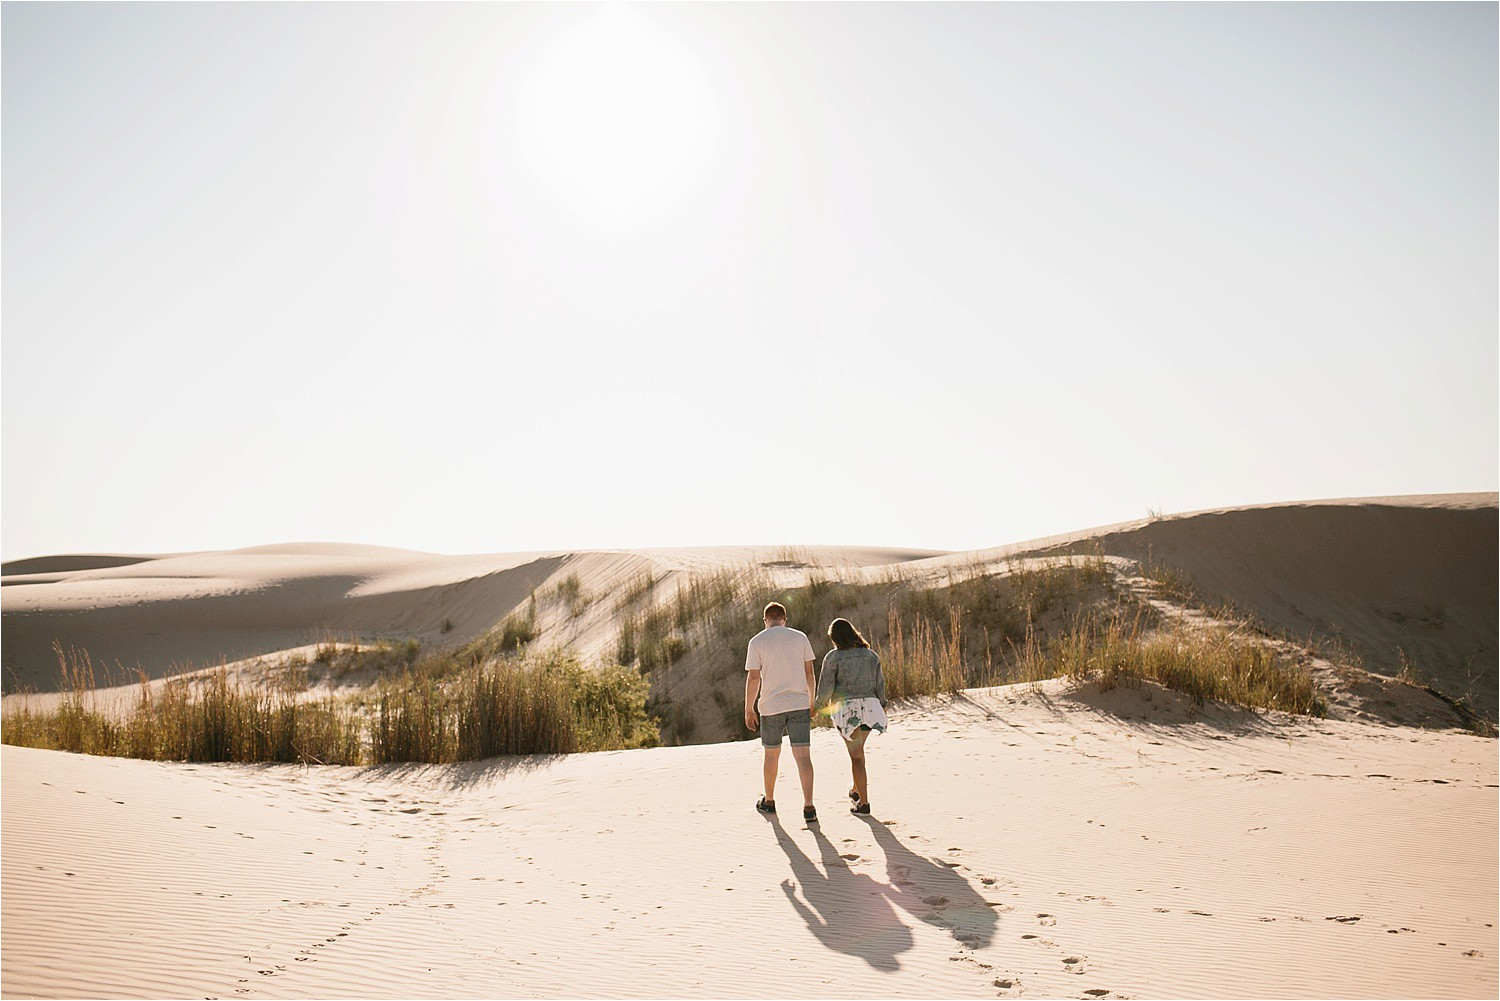 Lauren + Jacob __ a monahans sand dunes engagement session at sunrise by North Texas Wedding Photographer, Rachel Meagan Photography __ 47